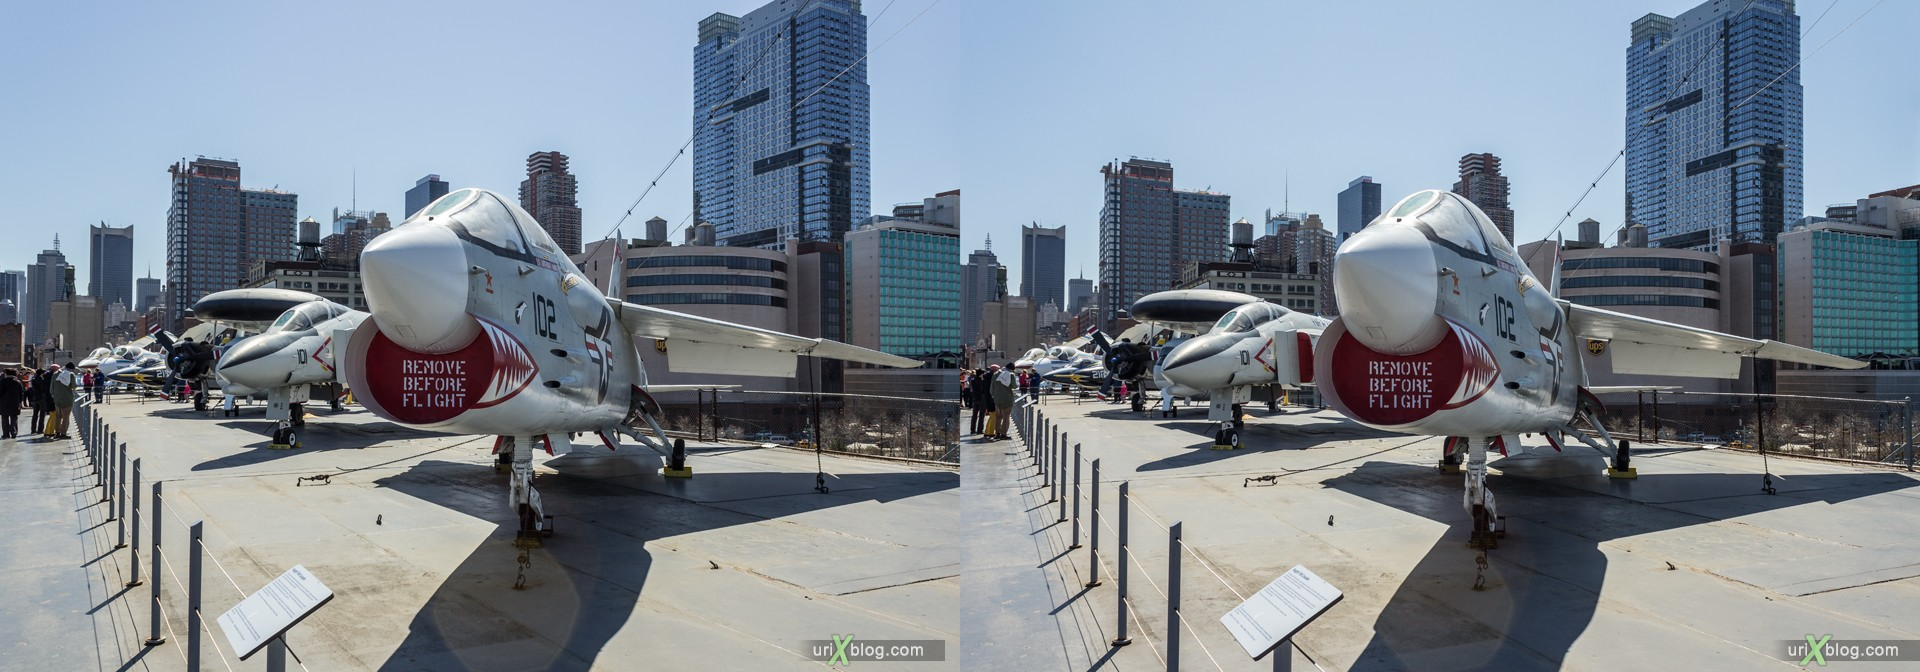 2013, USA, NYC, New York, aircraft carrier Intrepid museum, Vought F-8 Crusader, sea, air, space, ship, submarine, aircraft, airplane, helicopter, military, 3D, stereo pair, cross-eyed, crossview, cross view stereo pair, stereoscopic